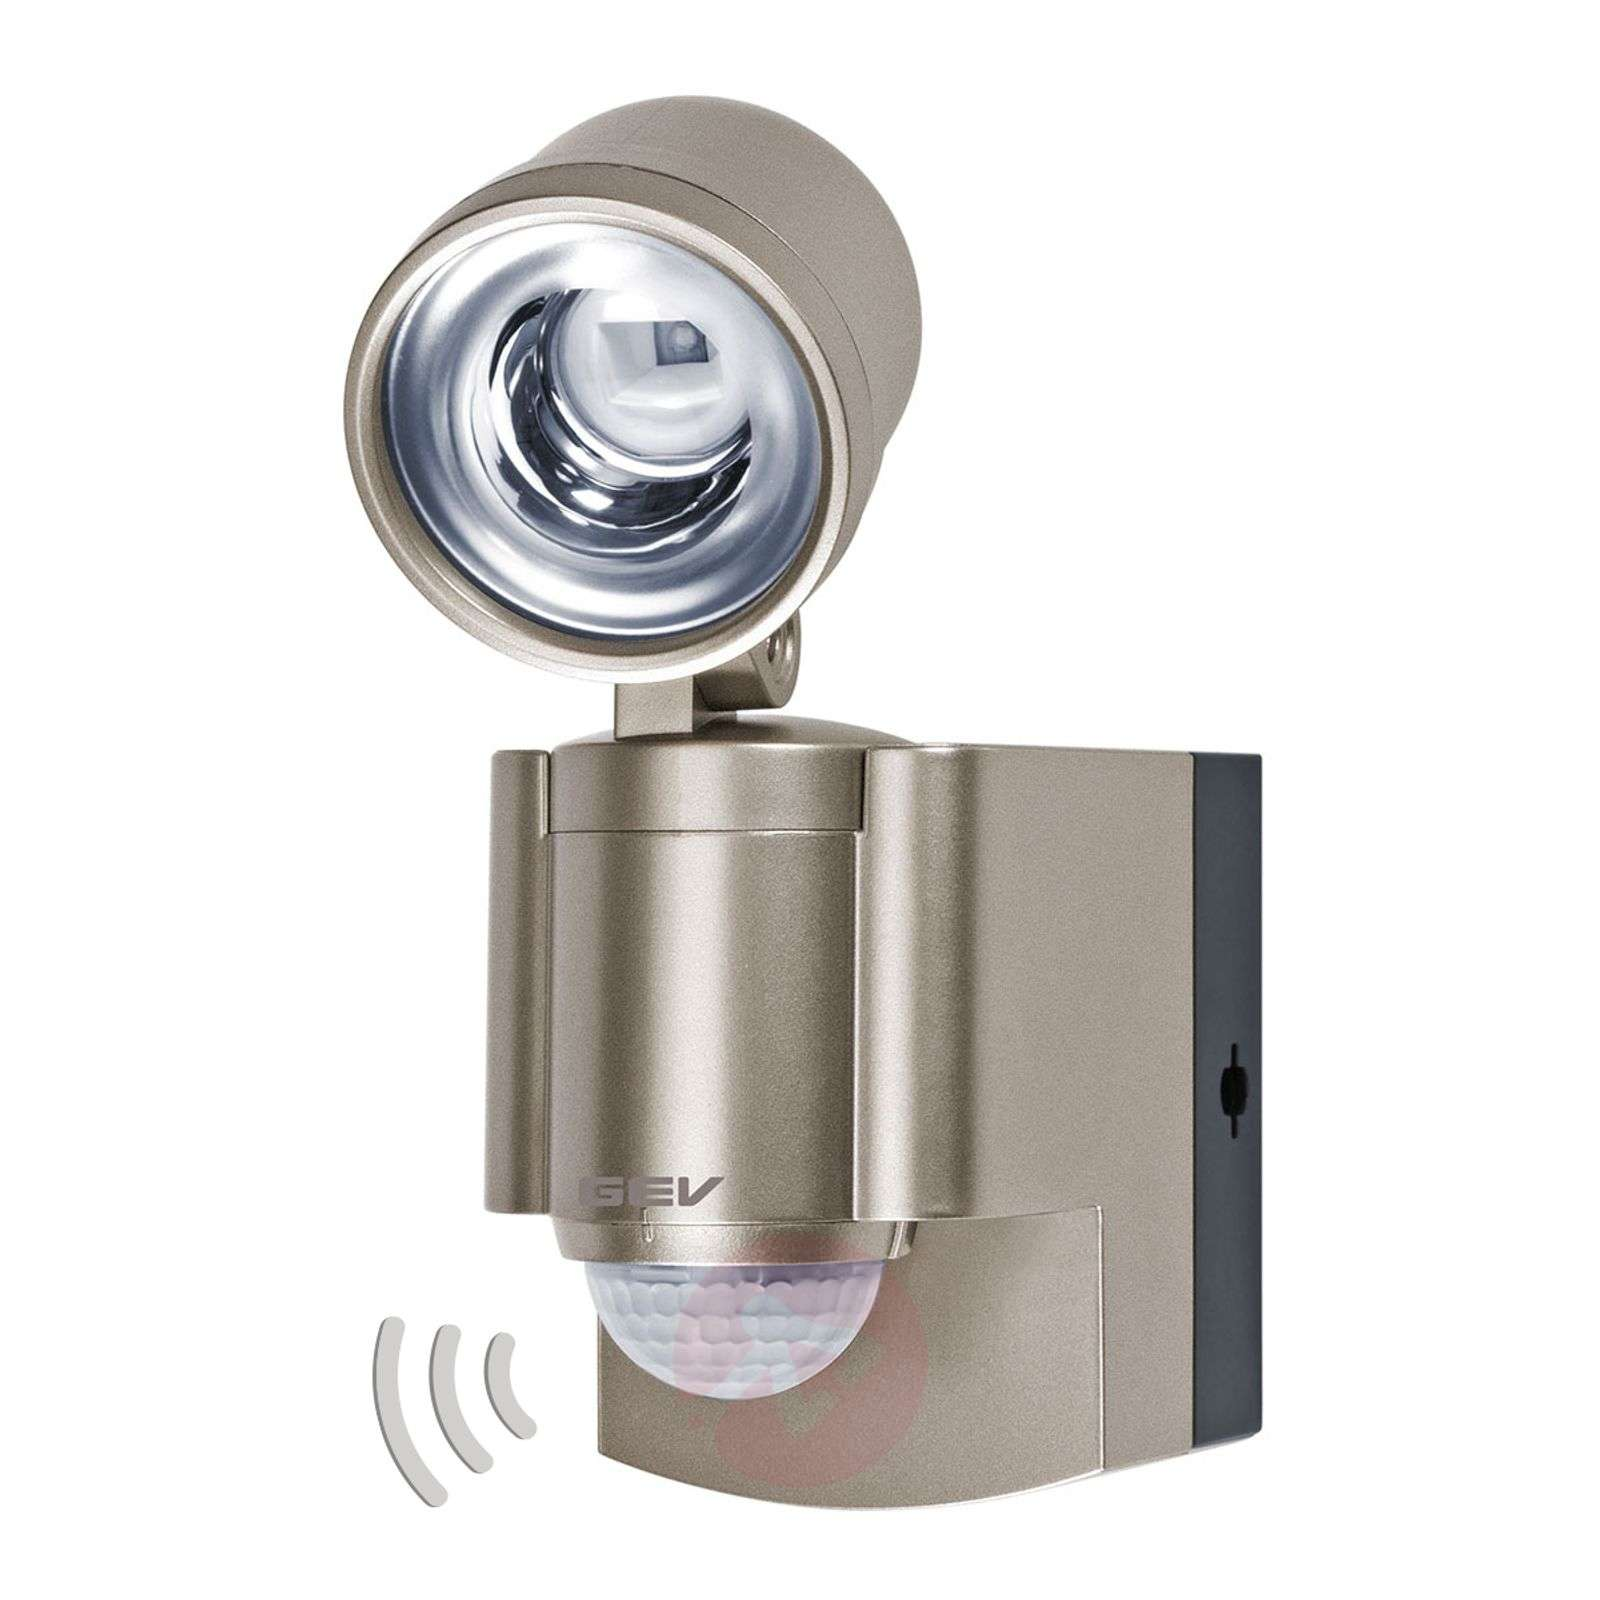 LLL 140 battery-powered LED spotlight with MD-4013089-05